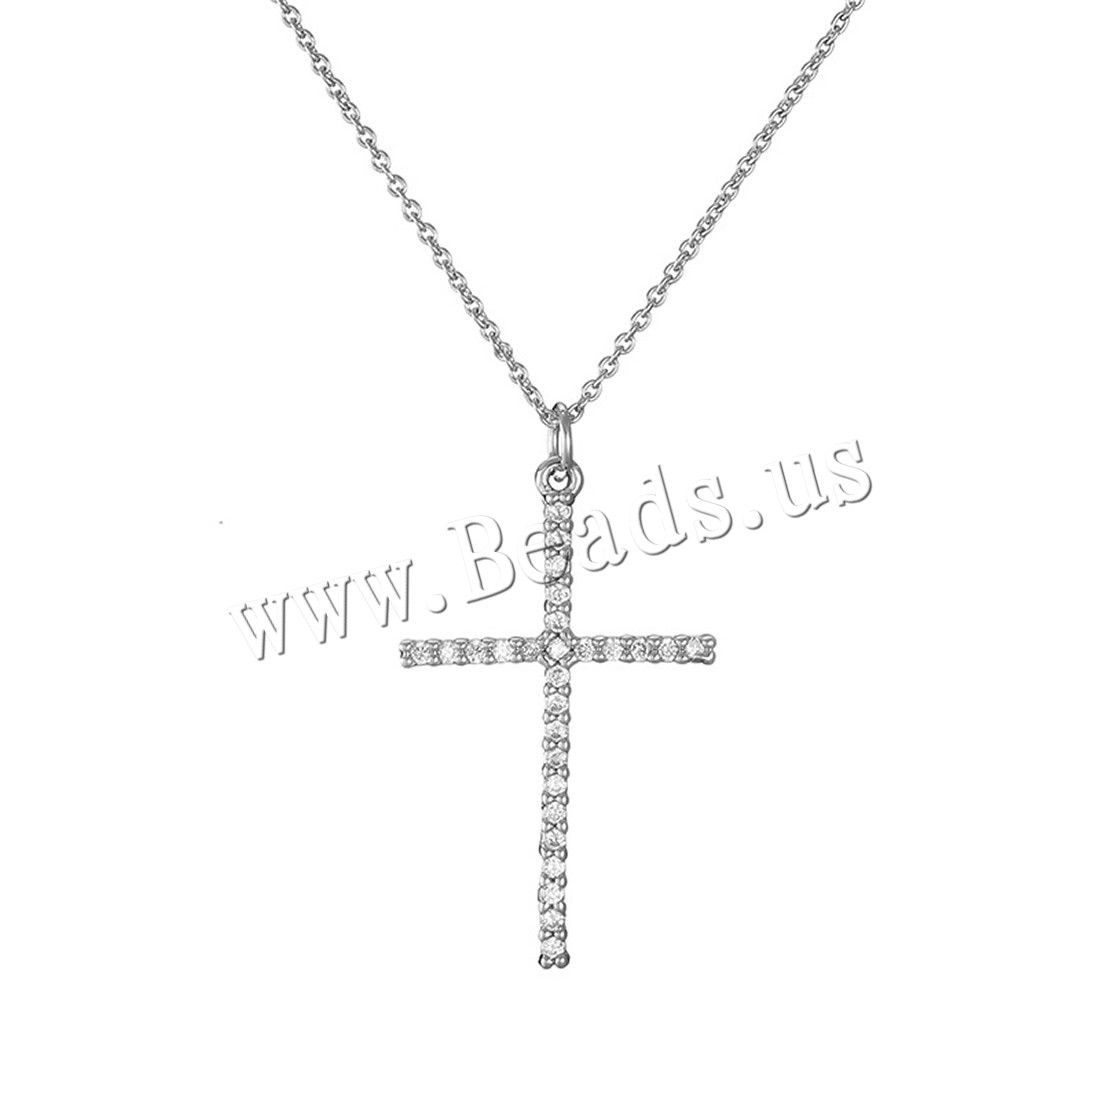 Buy Zinc Alloy Jewelry Necklace iron chain 5cm extender chain Cross platinum color plated oval chain & woman & rhinestone lead & cadmium free 27x17mm Sold Per Approx 15.5 Inch Strand